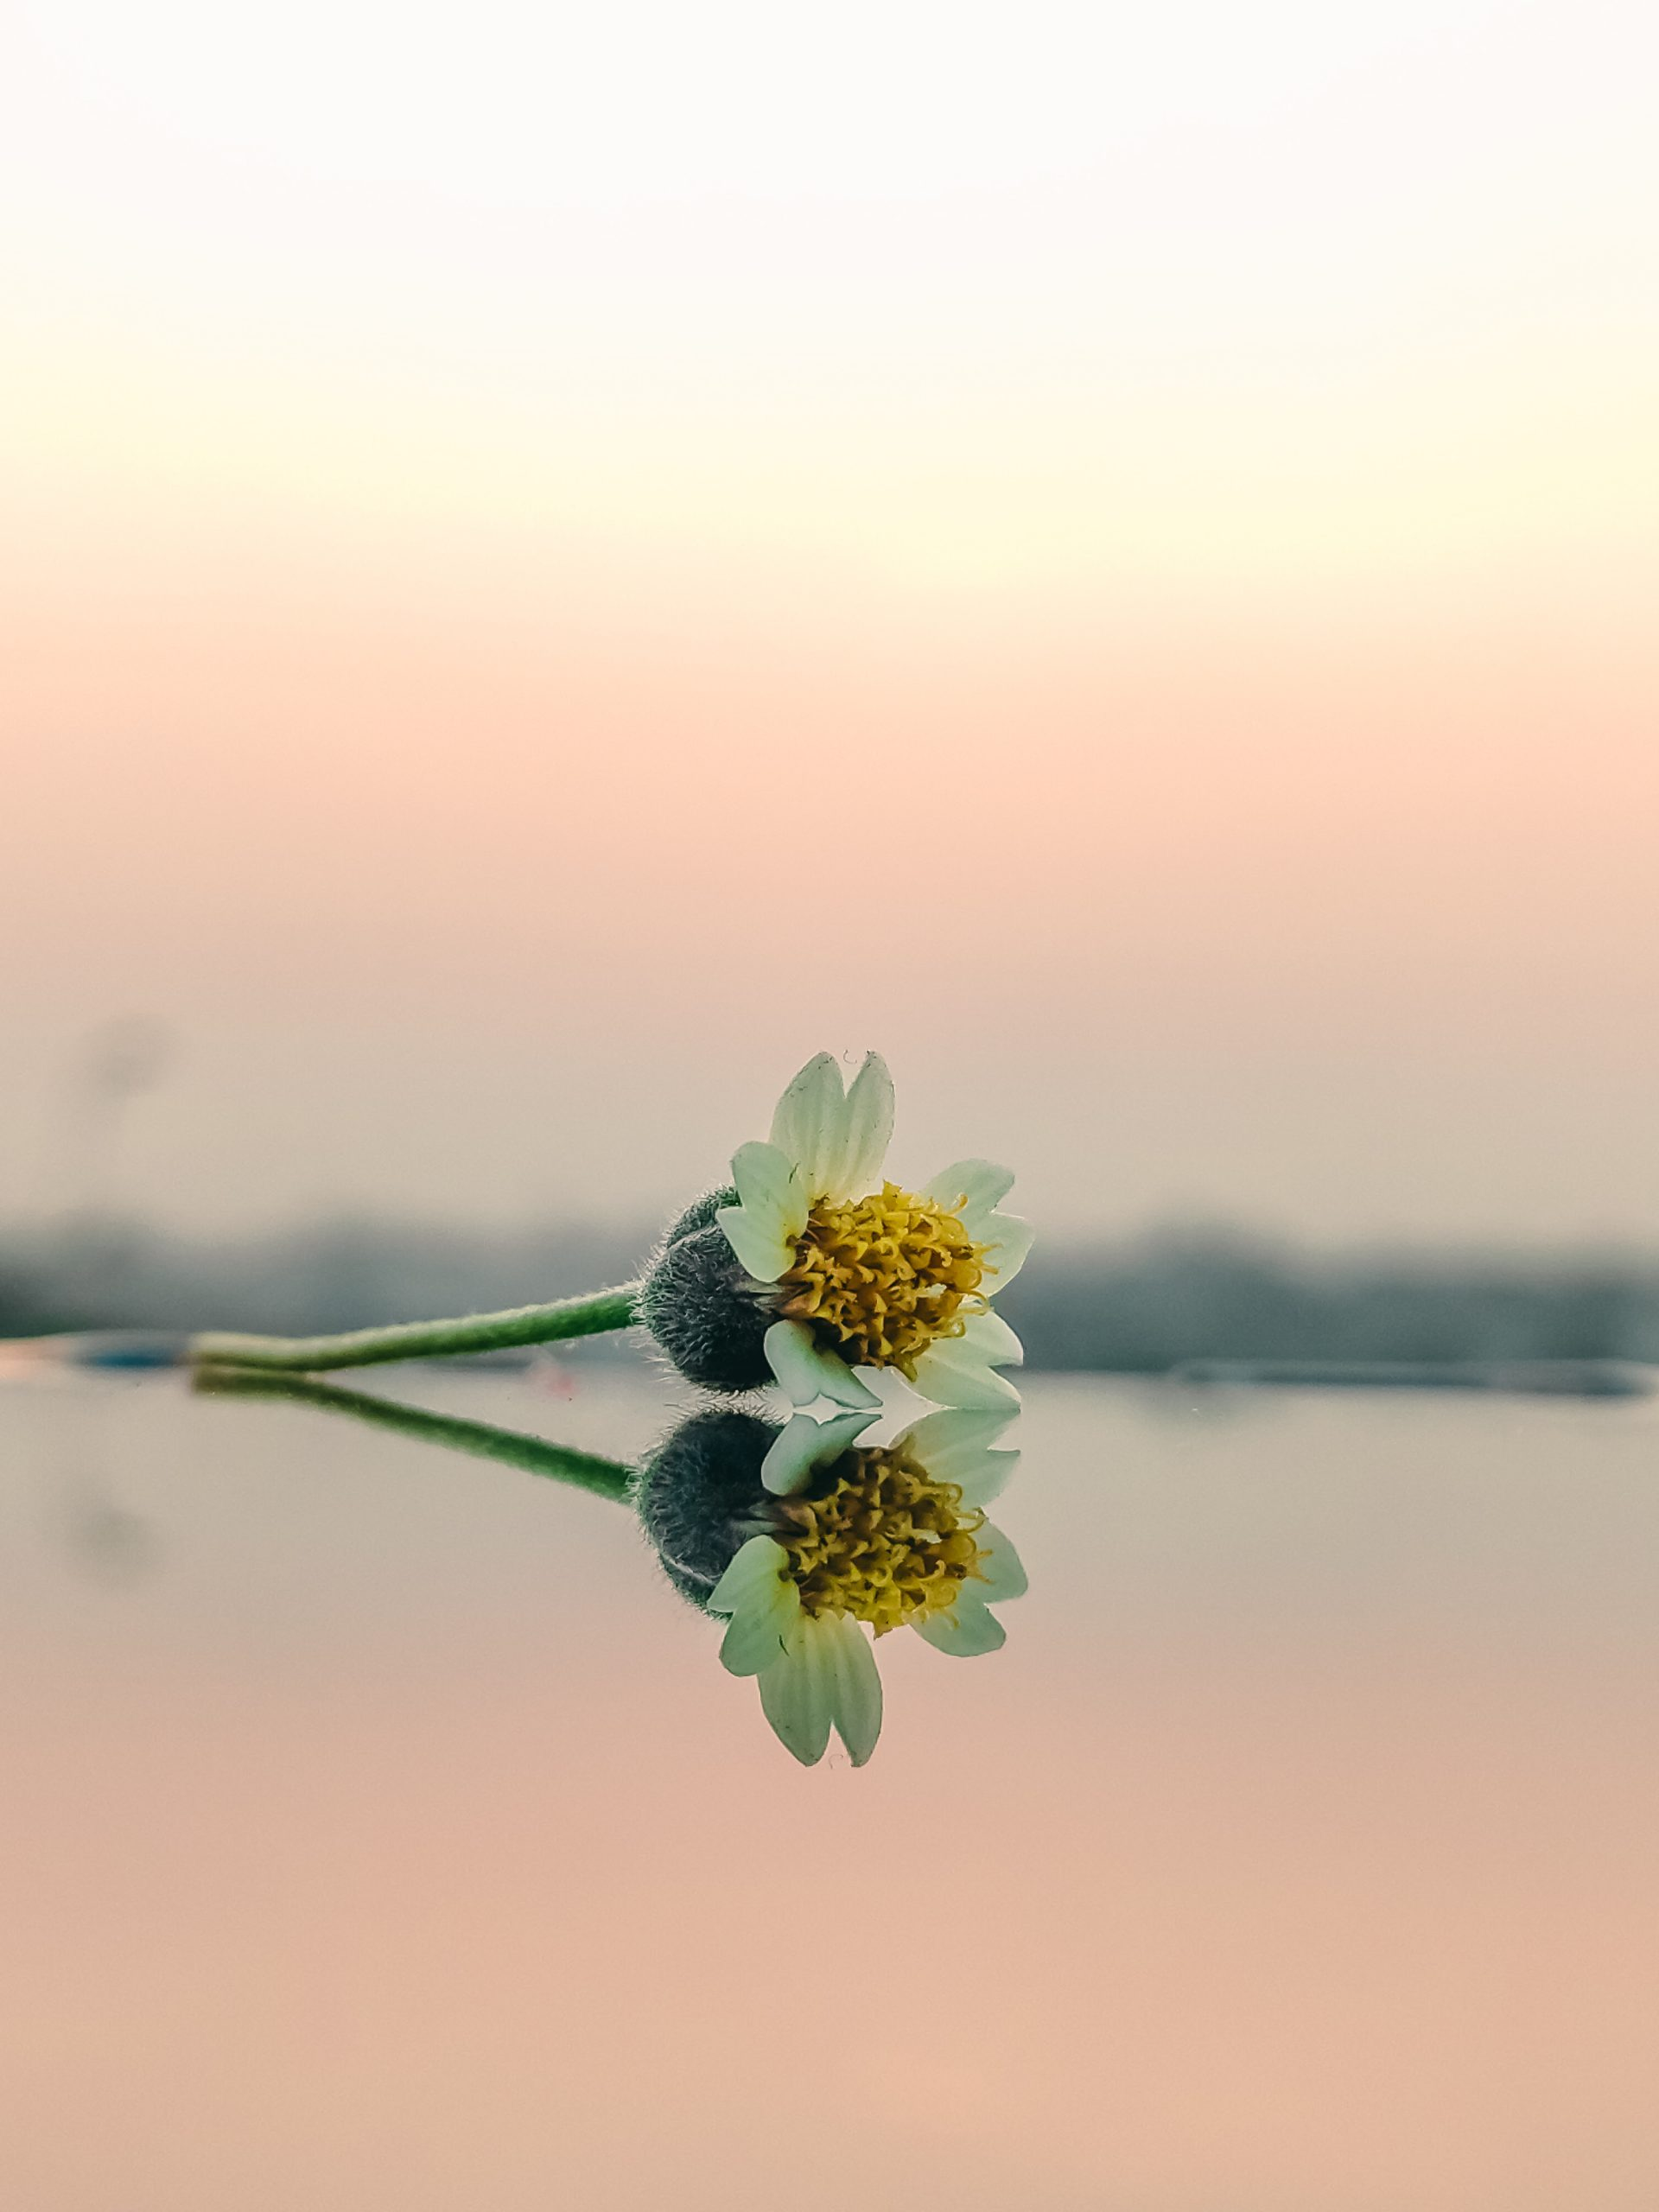 Reflection of a cut flower